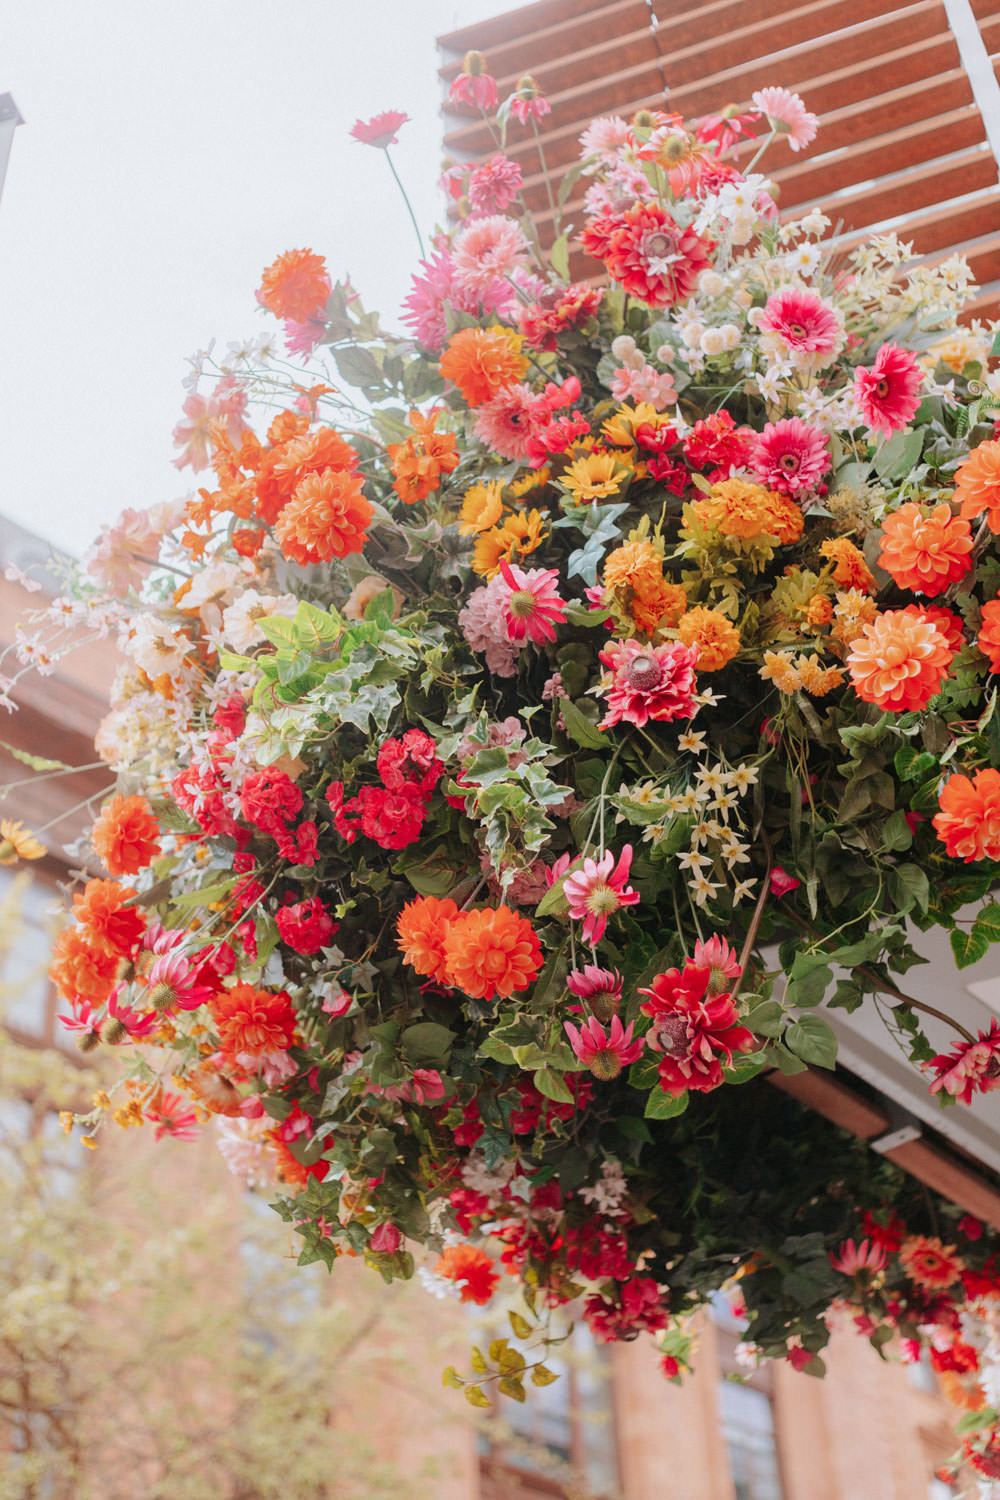 Early Hours London - Summer floral installations in London